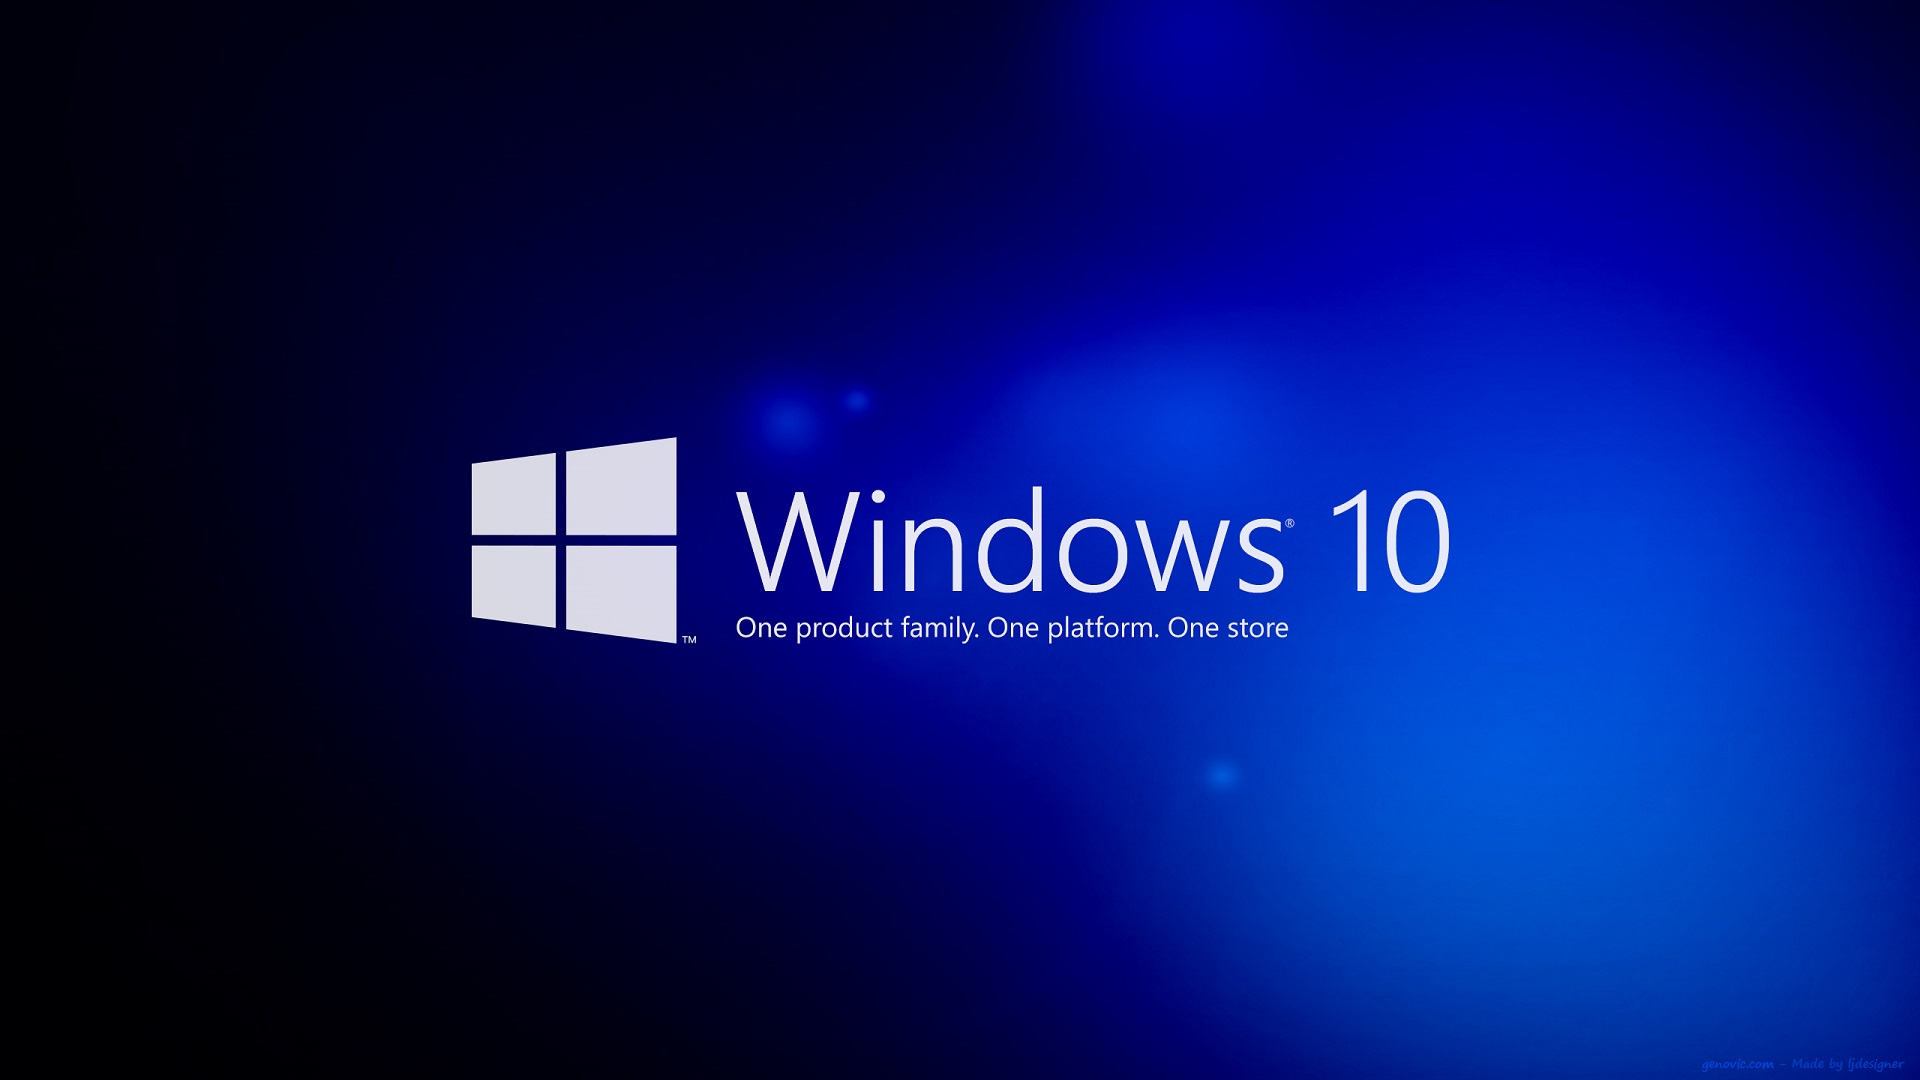 windows 10 wallpaper hd images